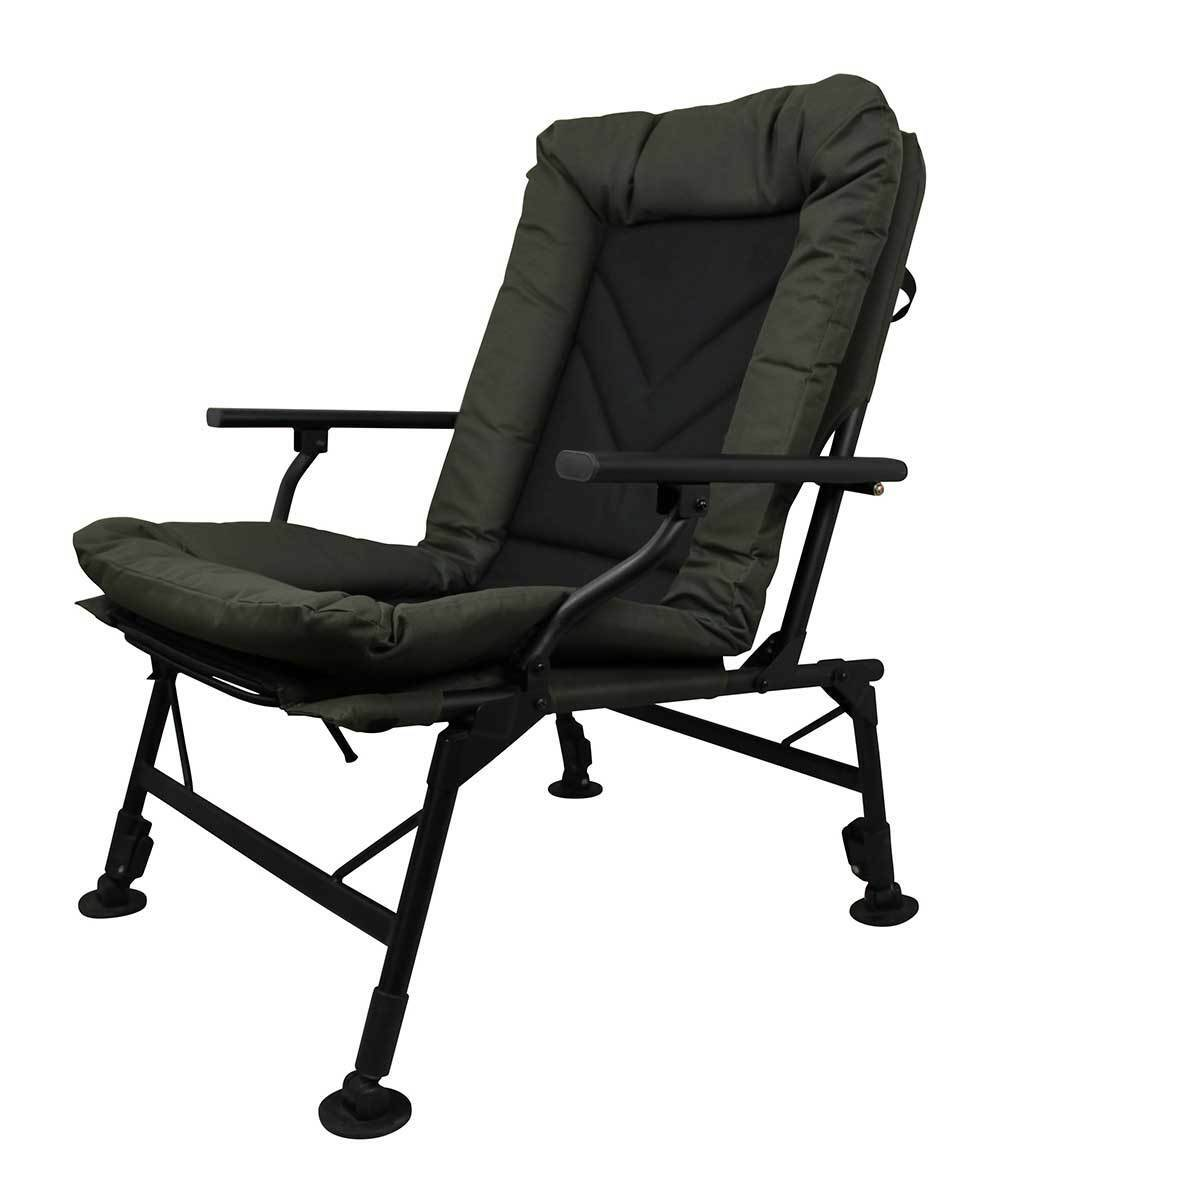 Prologic Comfort Carp Chair With Arms Ultra Padded Fishing